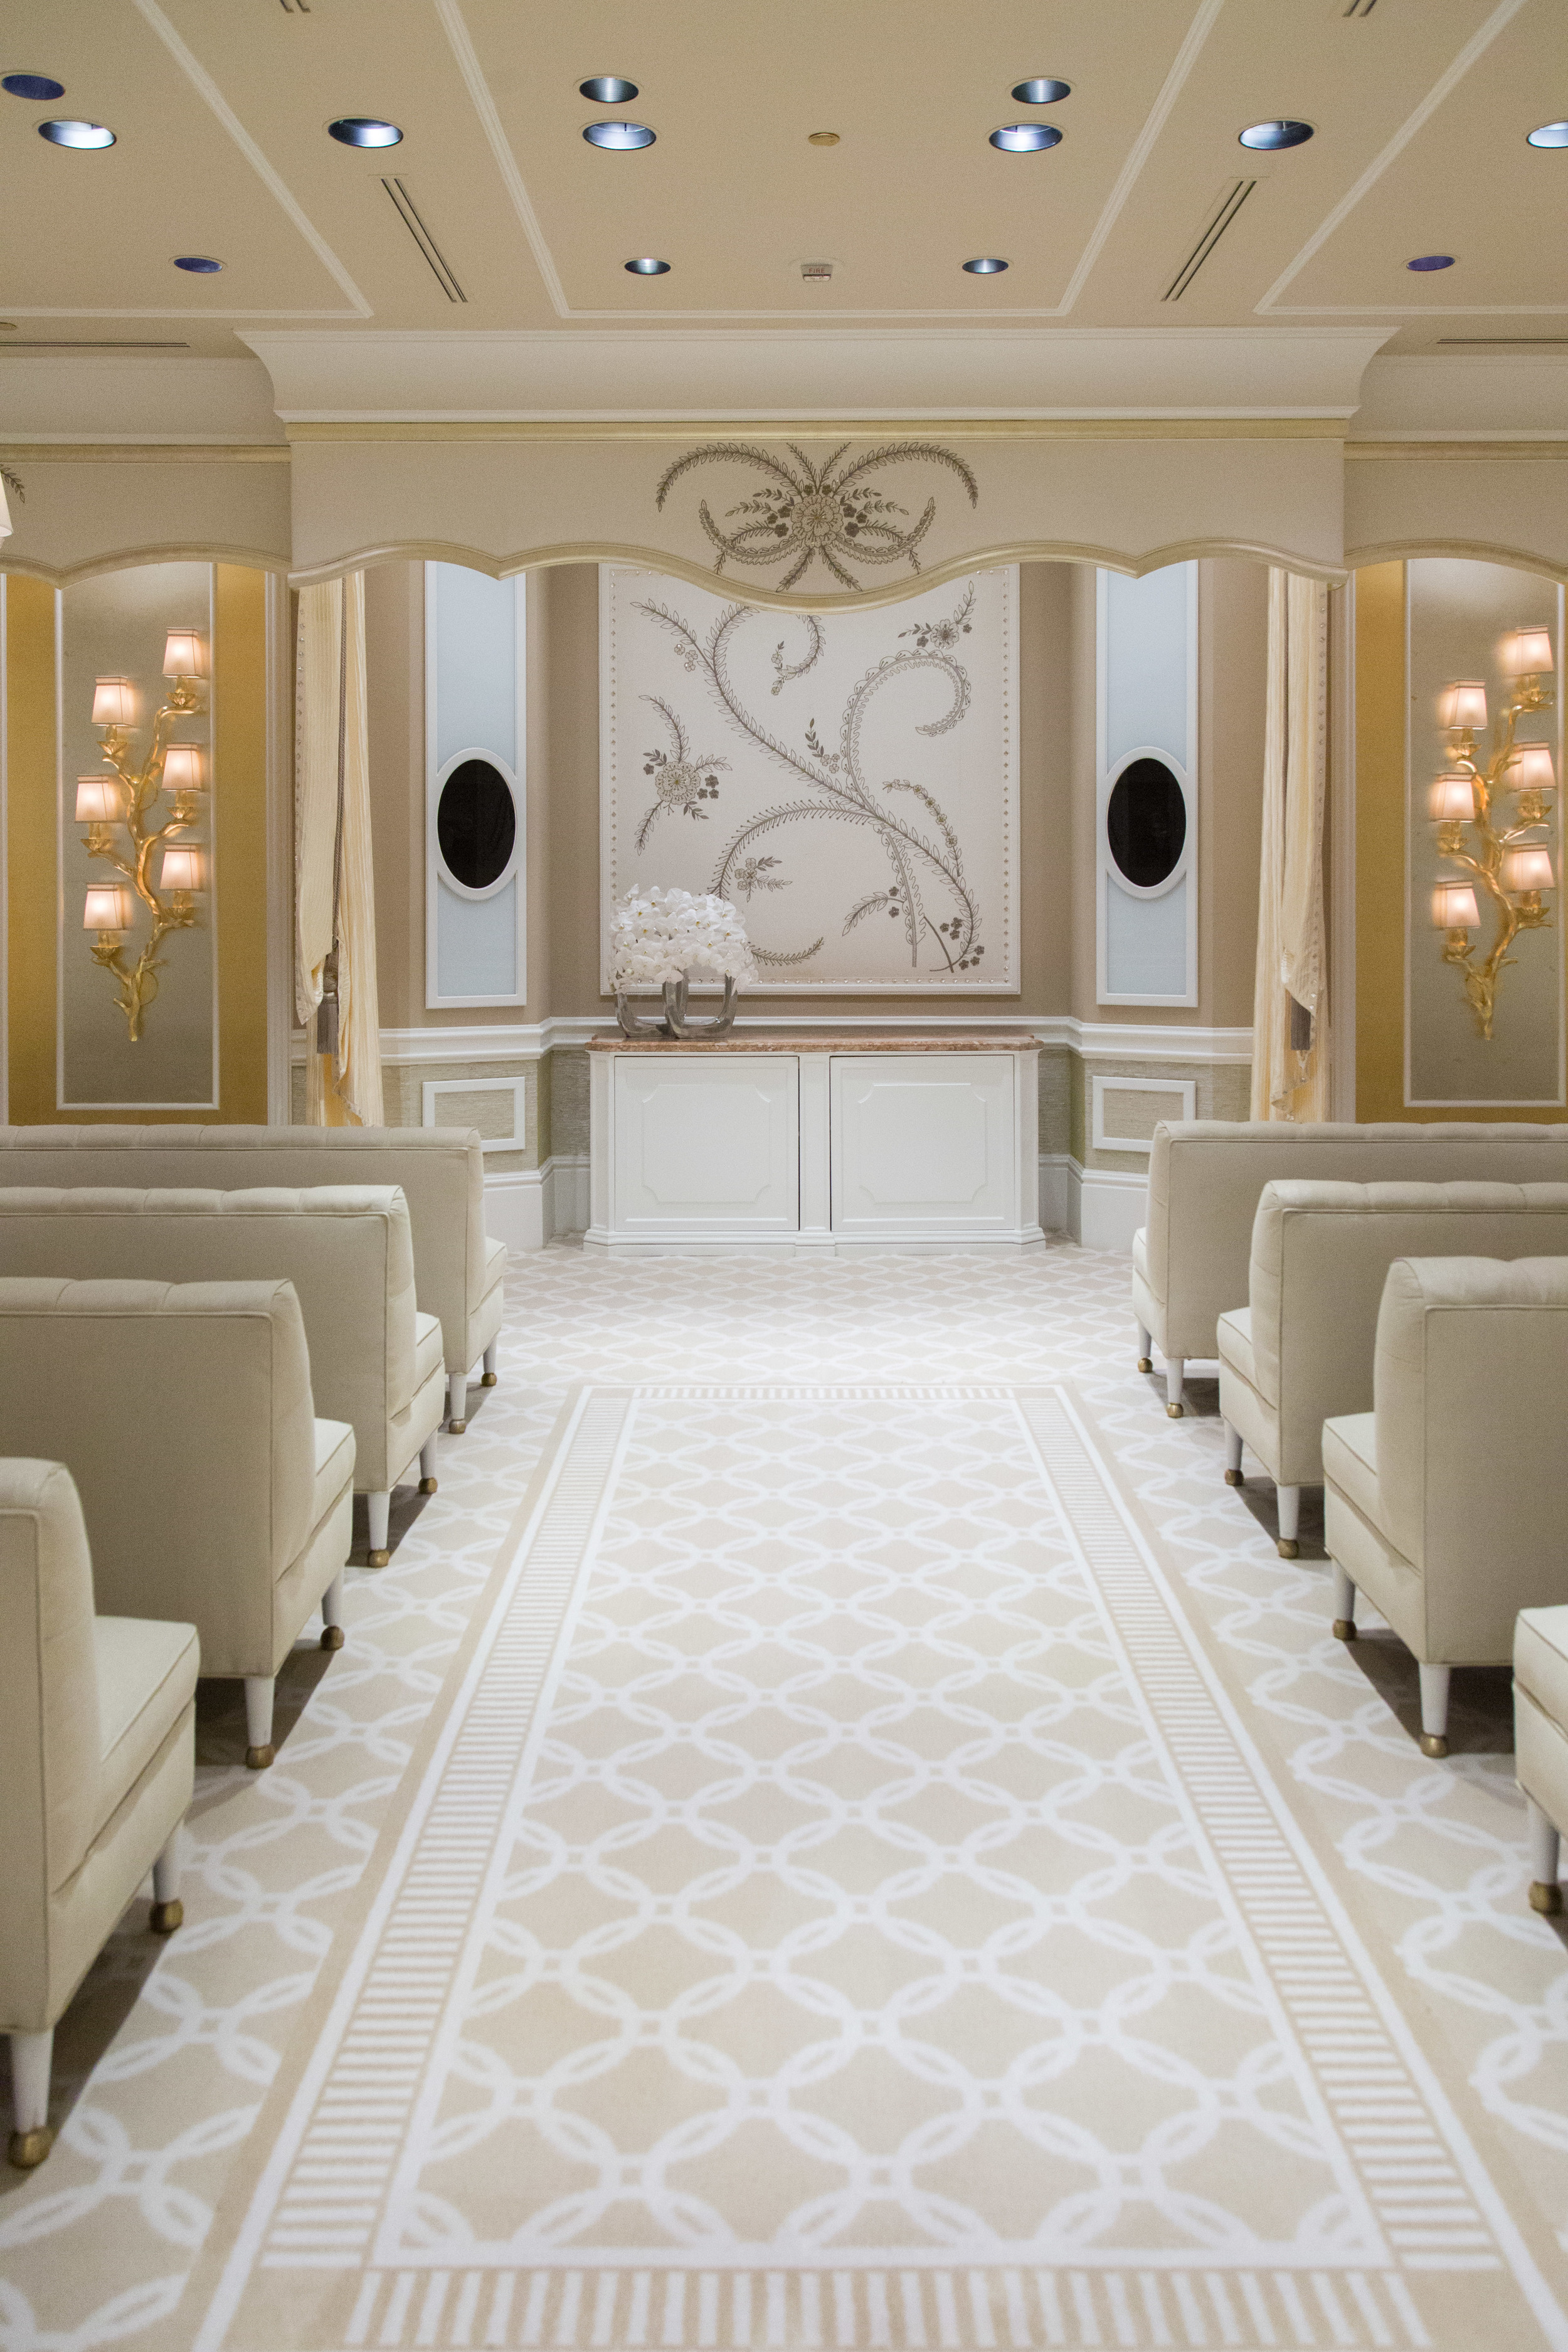 MUST-SEE: The Rich. Luxurious Interior Design of the Wynn Hotel — DESIGNED